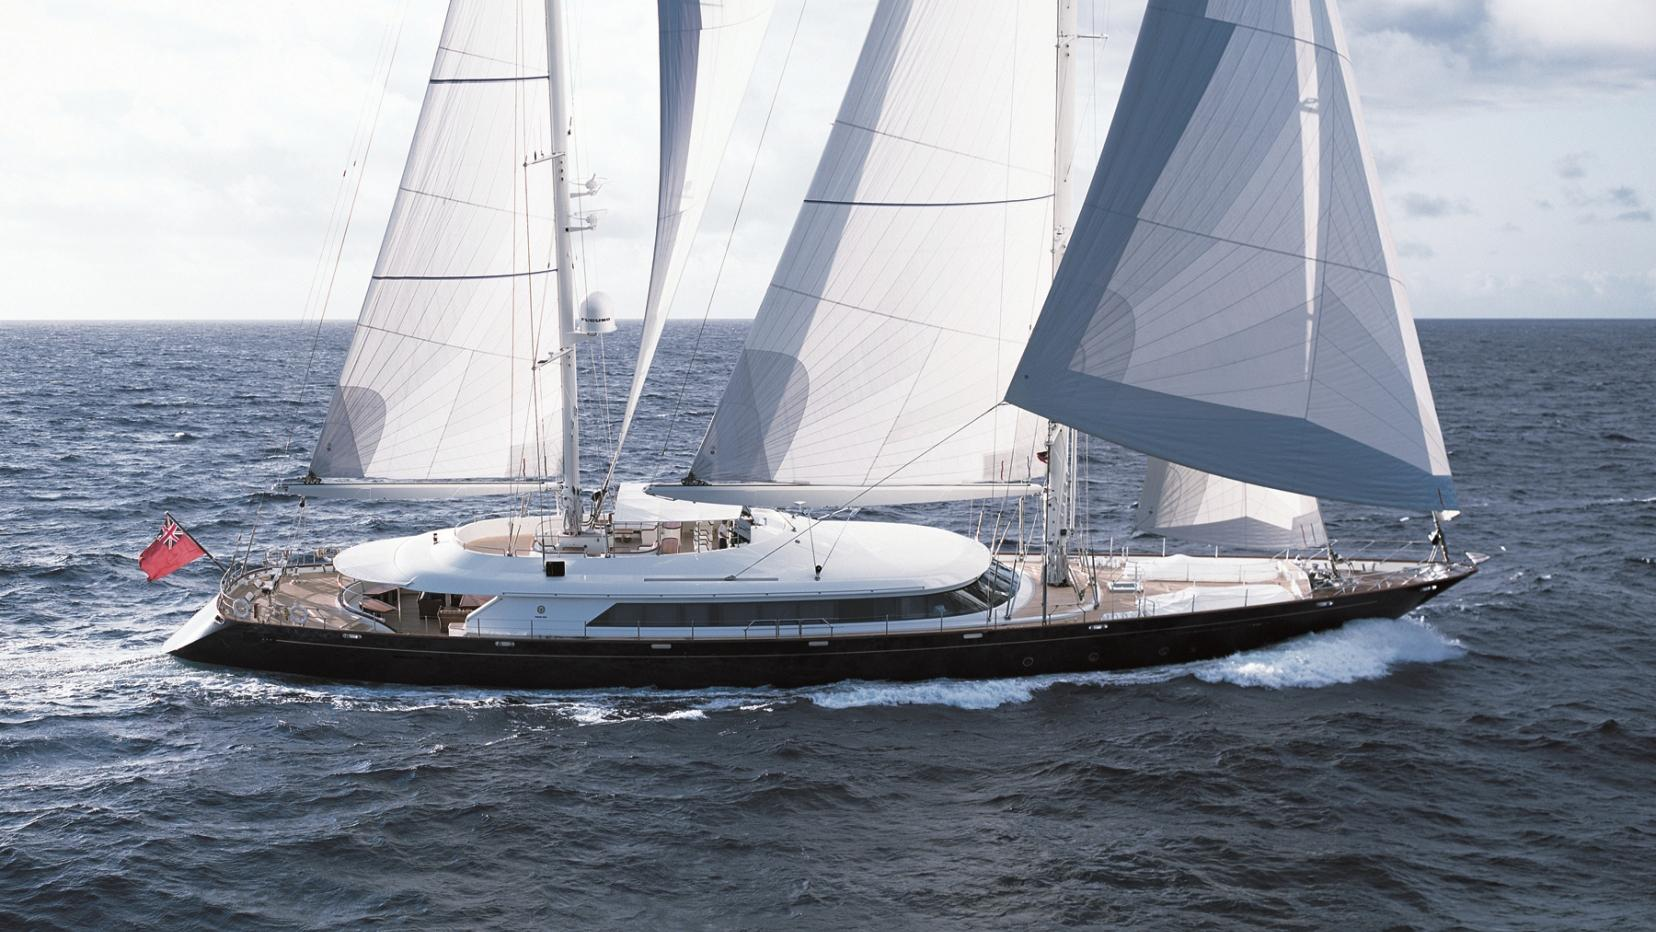 ariane-yacht-for-sale-profile